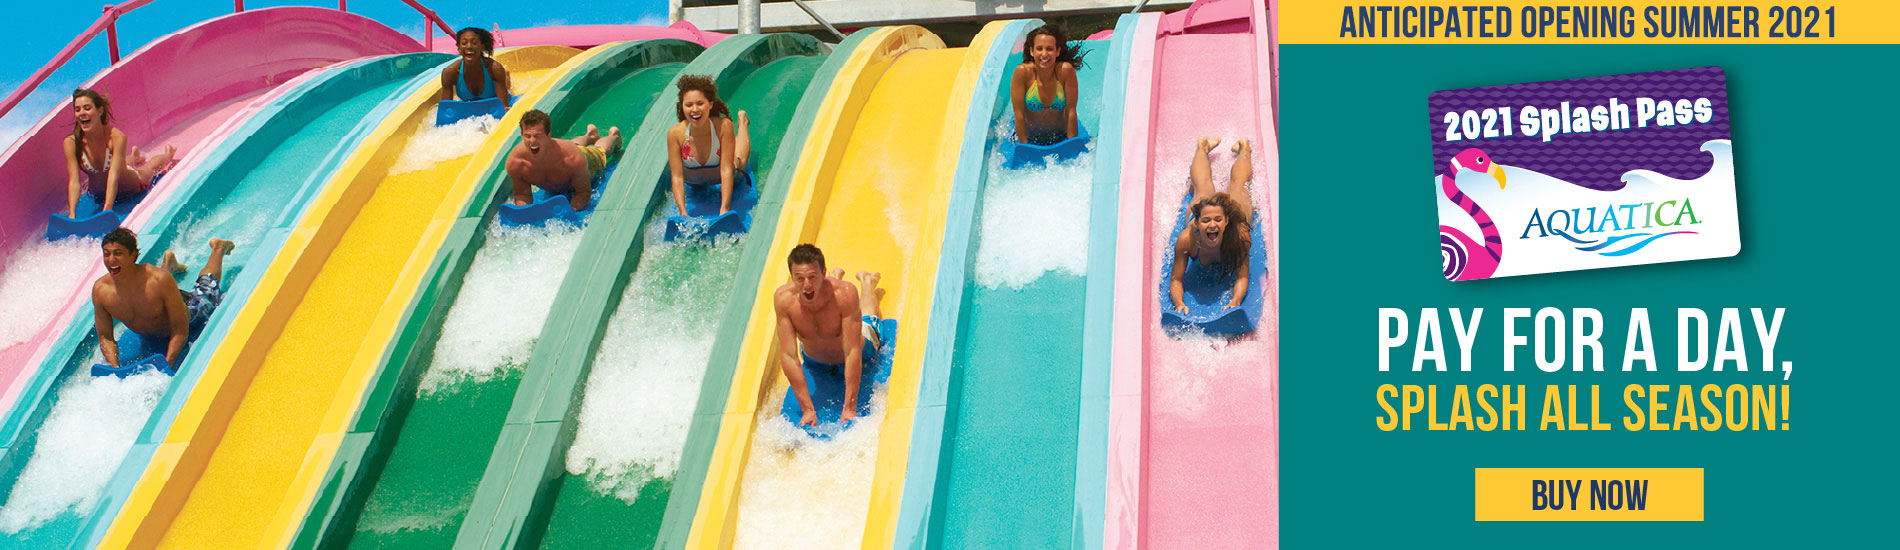 Pay for a day splash all season